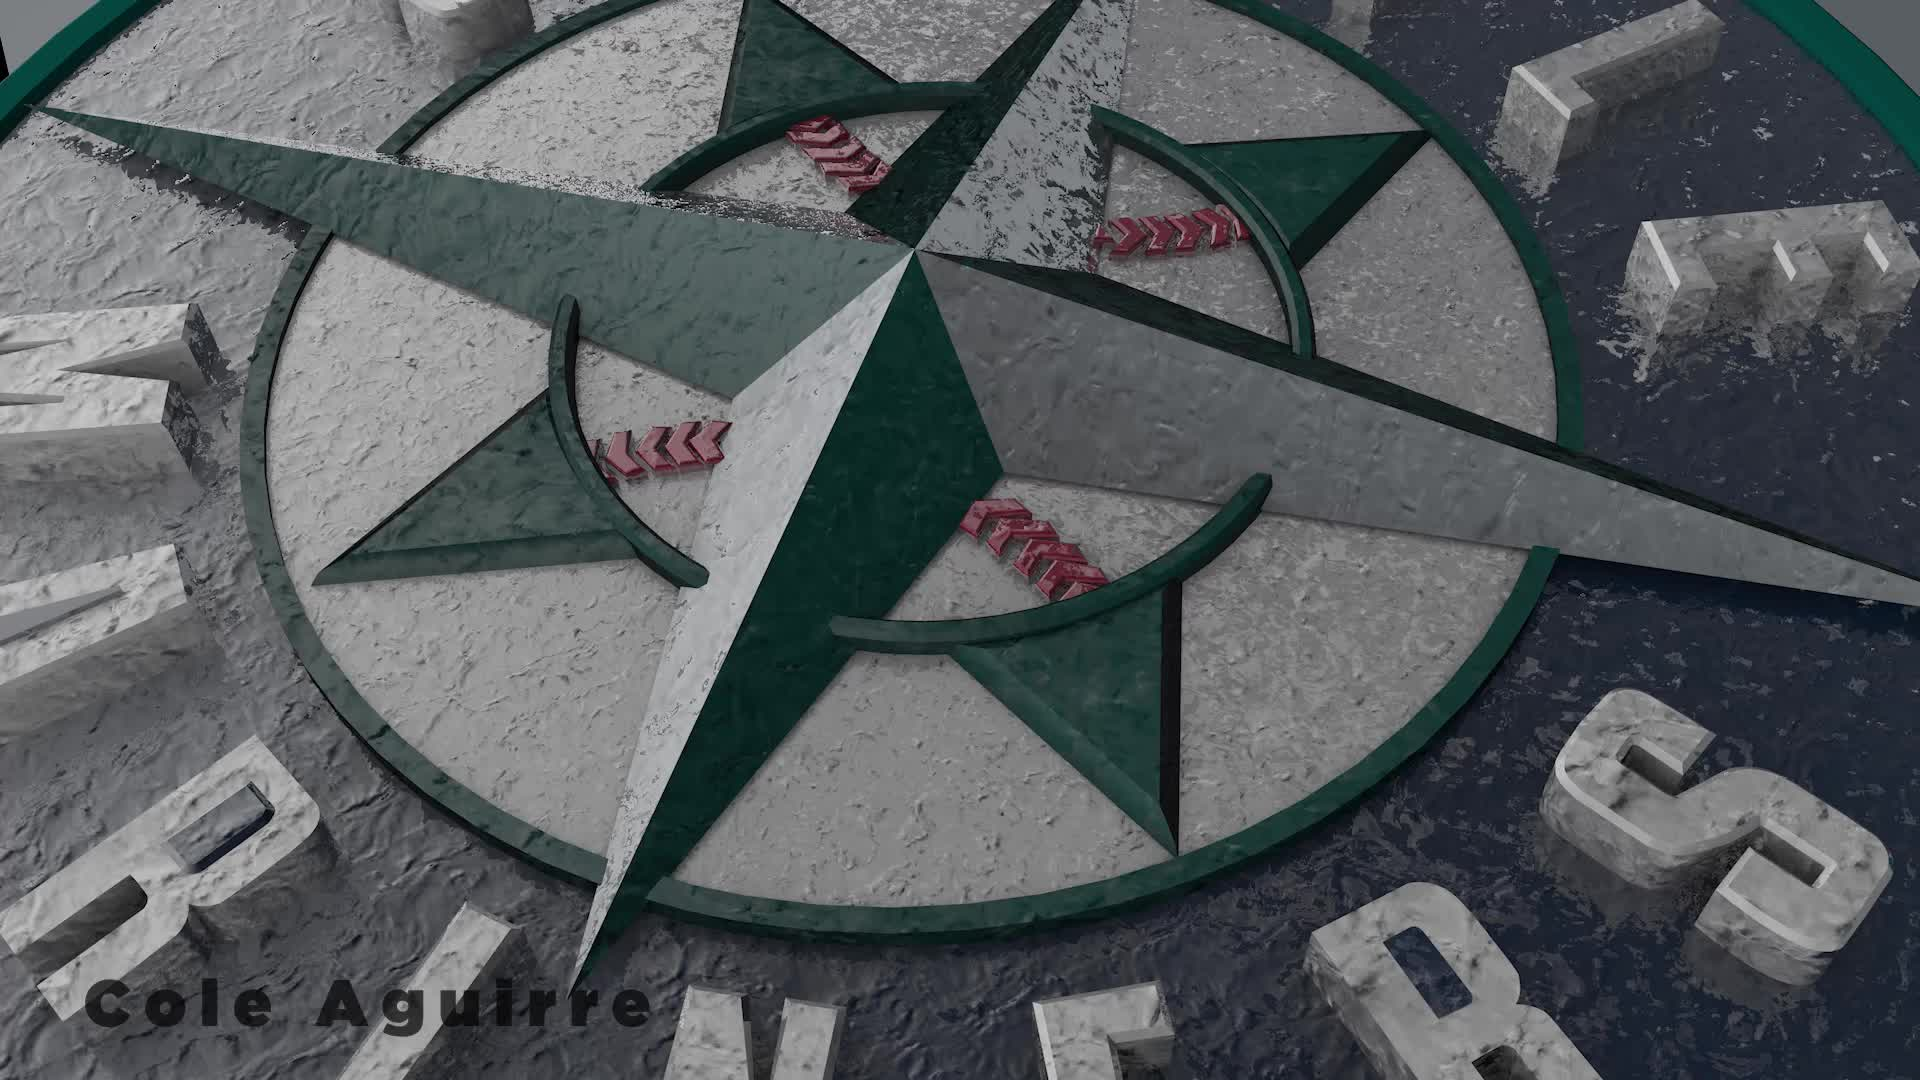 ColeAguirre mariners logo animation GIFs